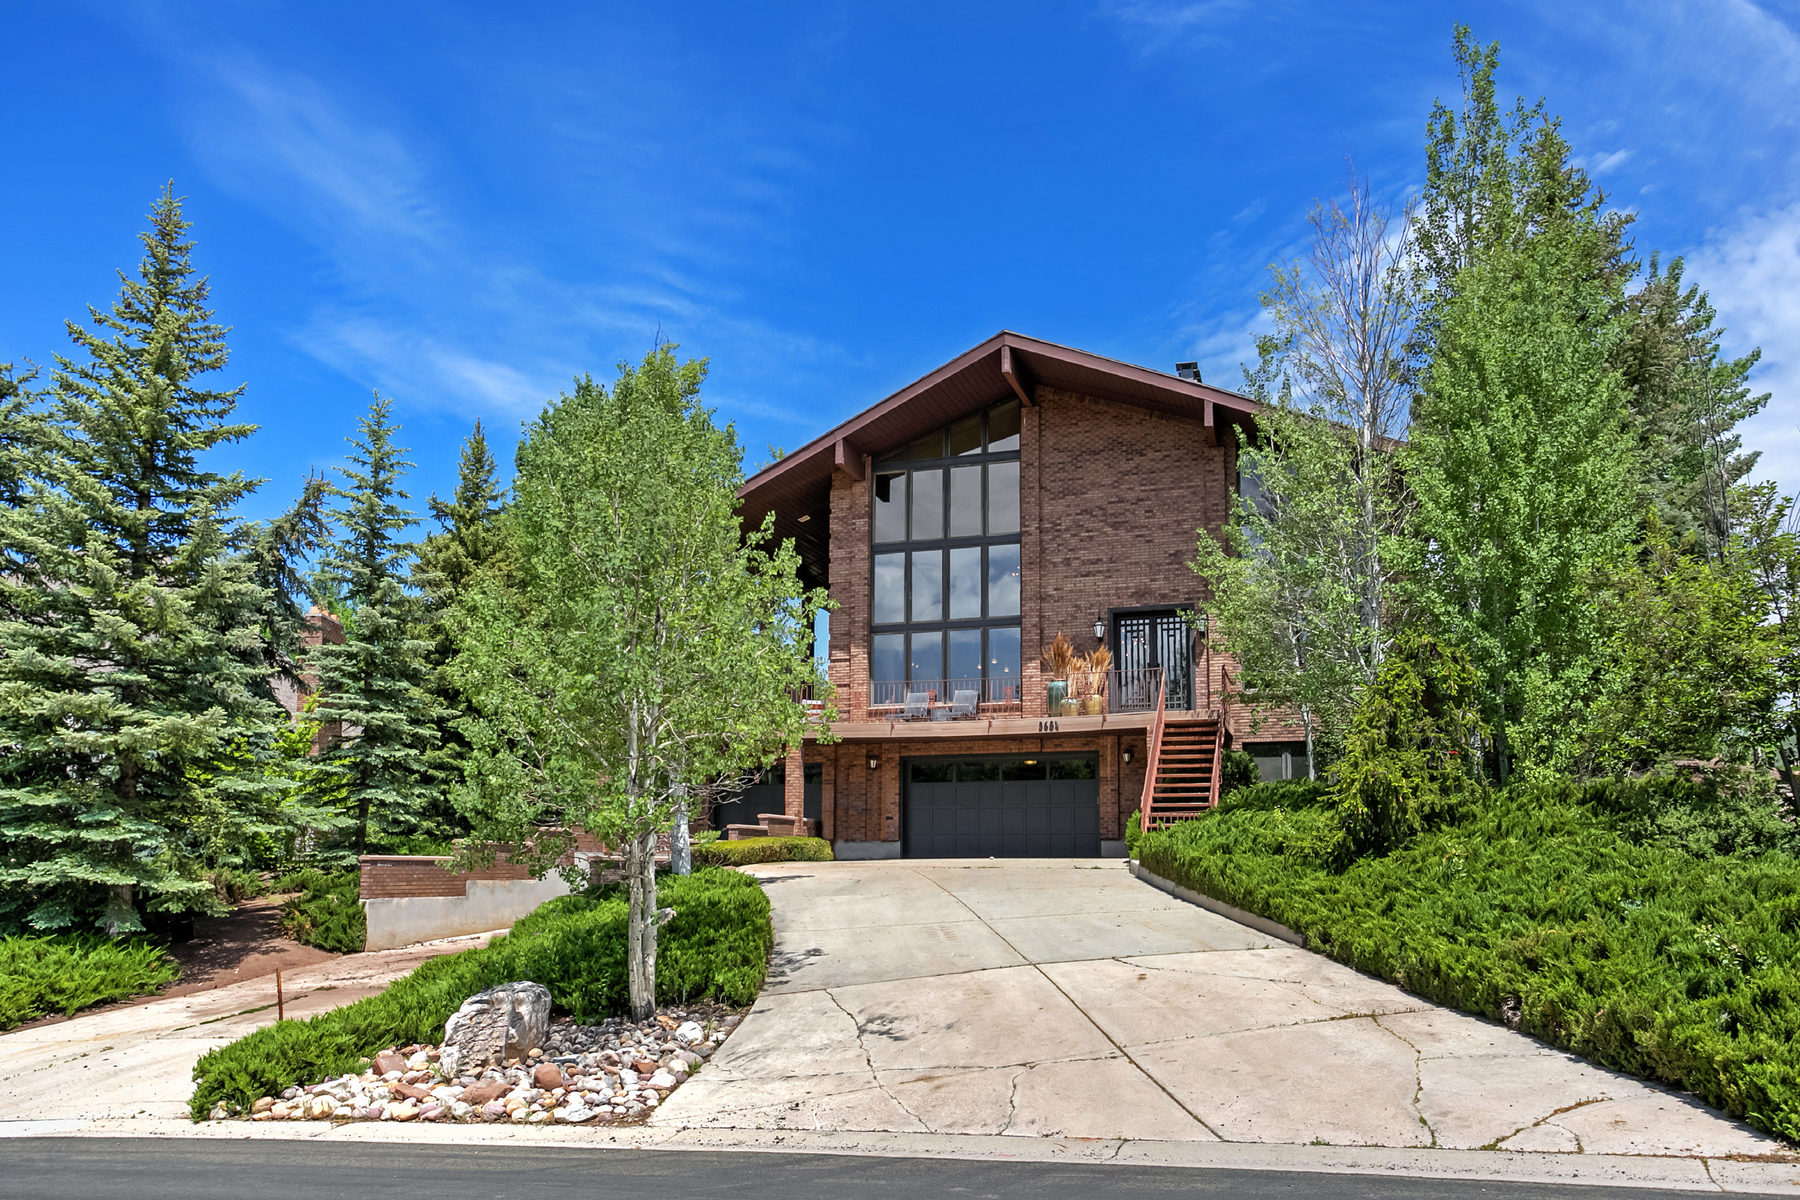 Single Family Home for Sale at Dramatic Home with Contemporary Updates 3684 Wrangler Way Park City, Utah, 84098 United States